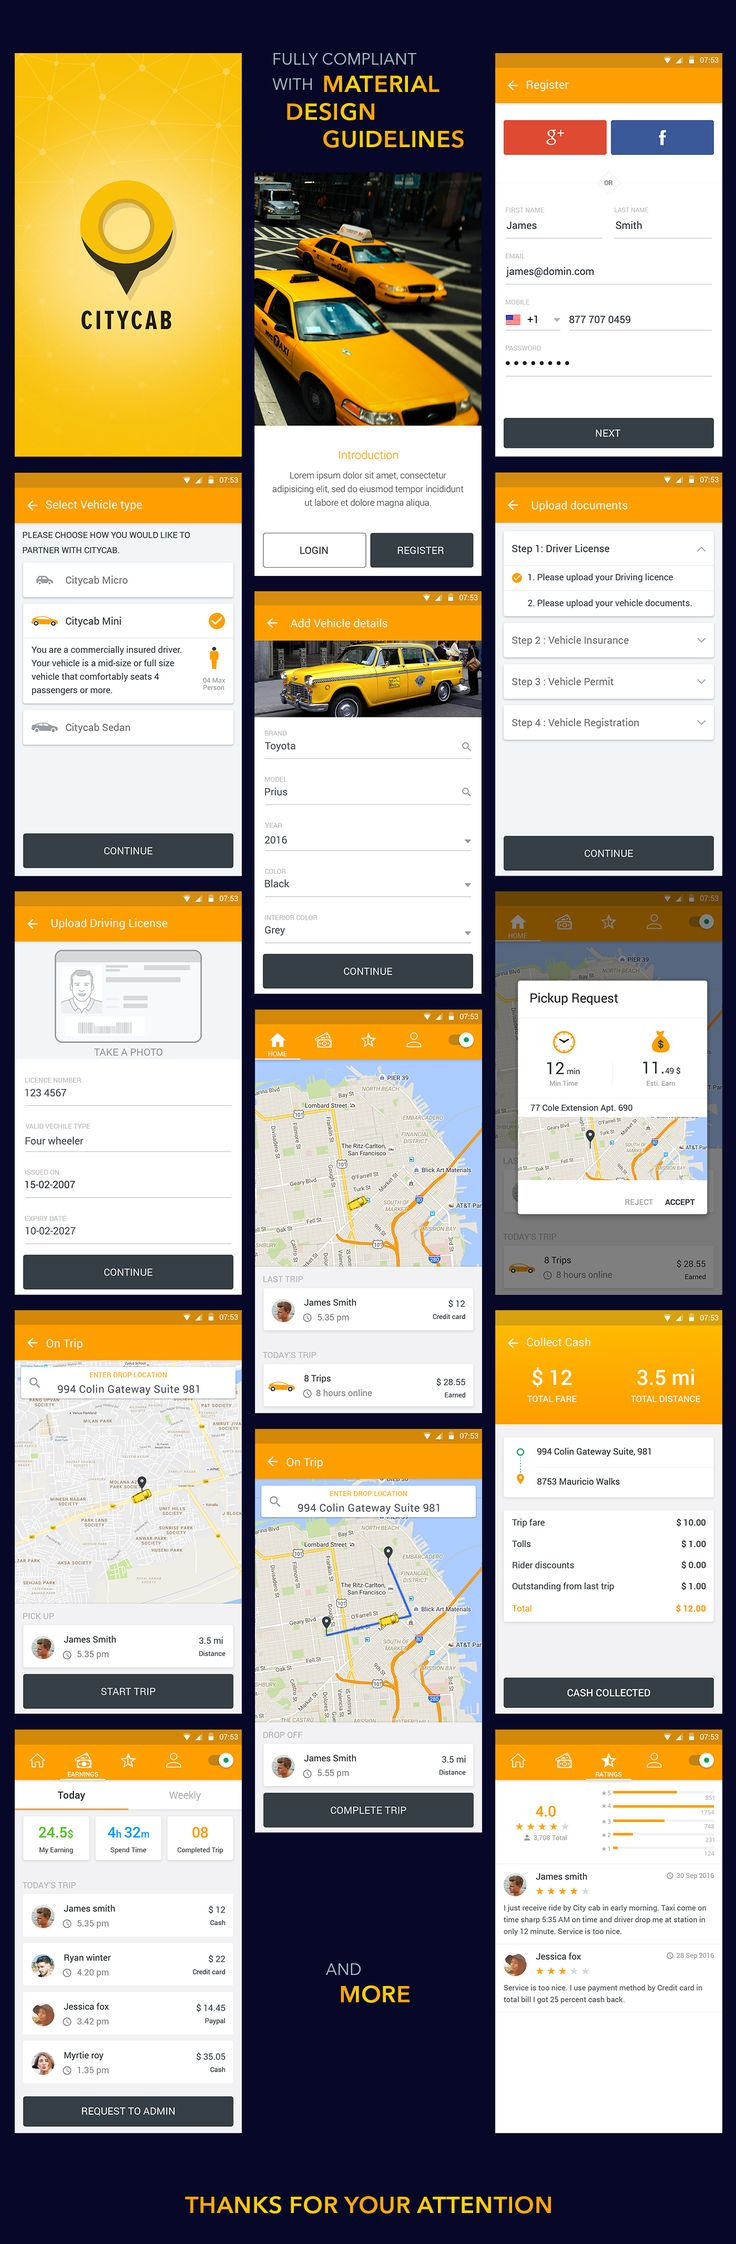 CityCab App is a material designed influenced Android app PSD UI with 40 plus screen grabs. It demonstrates the design of the Uber like taxi app. These designs can be successfully deployed for a similar app and can be a used as a reference material for st…